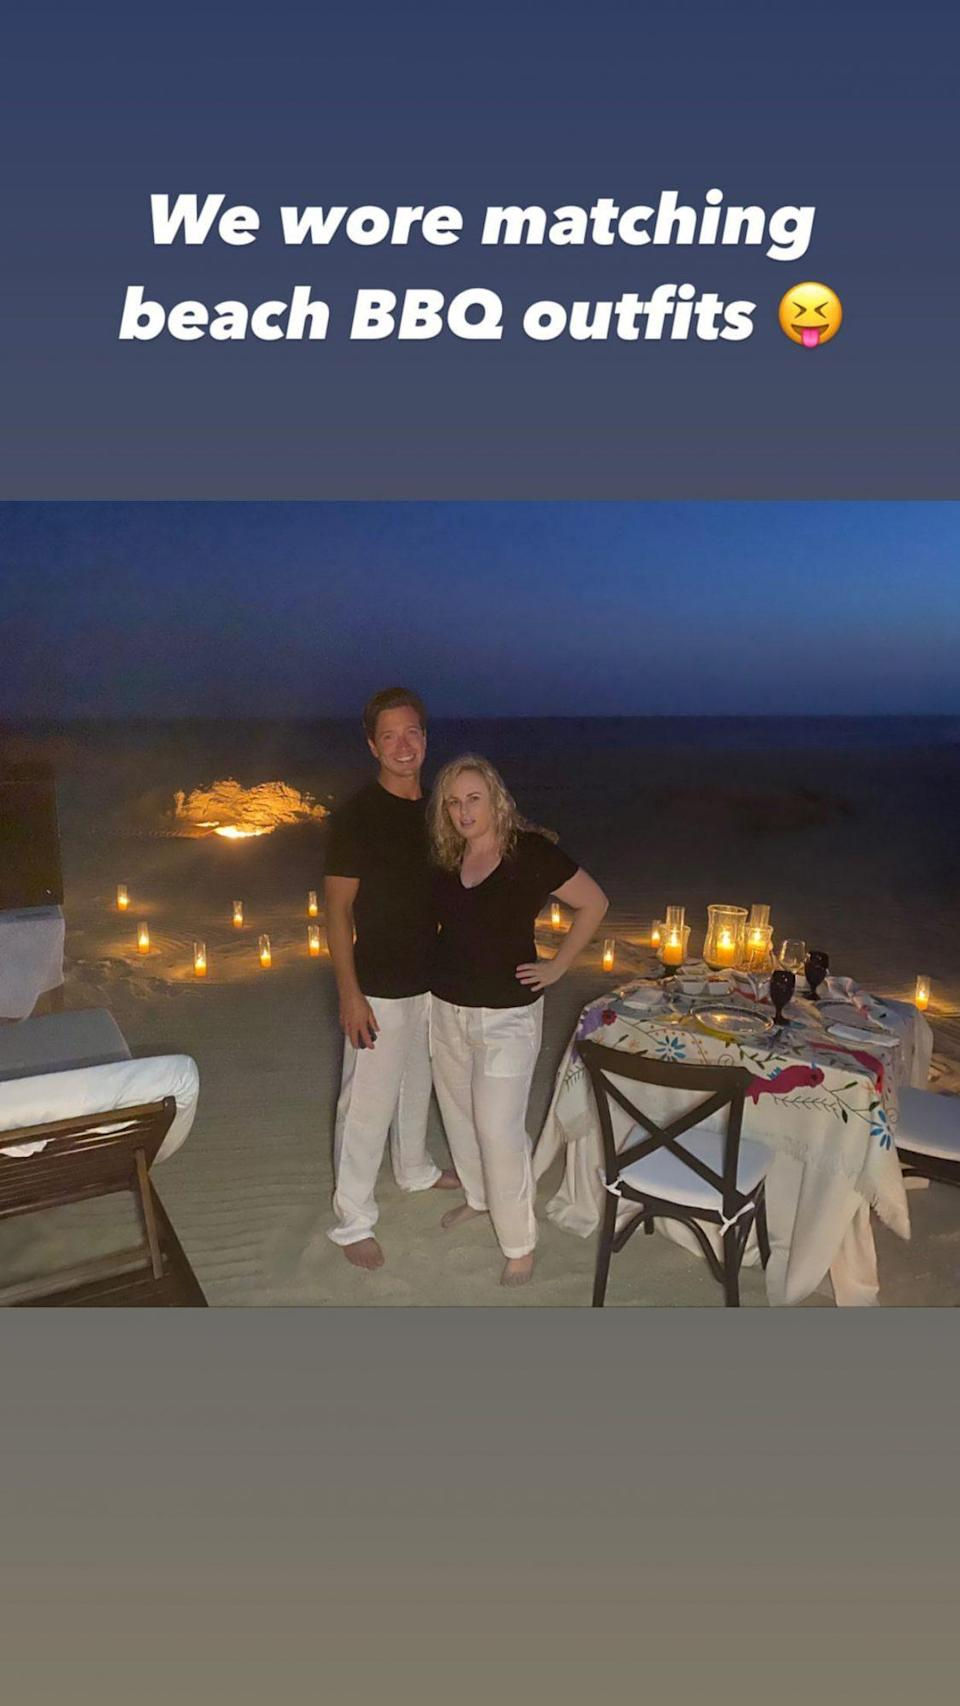 """<p>Despite the travel restrictions due to the ongoing pandemic, Wilson has traveled a fair amount — spending time in New York City, L.A. and Australia, in addition to taking trips with Busch to Cabo San Lucas and Aspen. </p> <p>During their time in Mexico, the pair enjoyed <a href=""""https://people.com/movies/rebel-wilson-boyfriend-jacob-busch-have-romantic-bbq-date-night-mexico/"""" rel=""""nofollow noopener"""" target=""""_blank"""" data-ylk=""""slk:a romantic beachside movie night"""" class=""""link rapid-noclick-resp"""">a romantic beachside movie night</a>, surrounded by candles and snacking on BBQ food. </p>"""